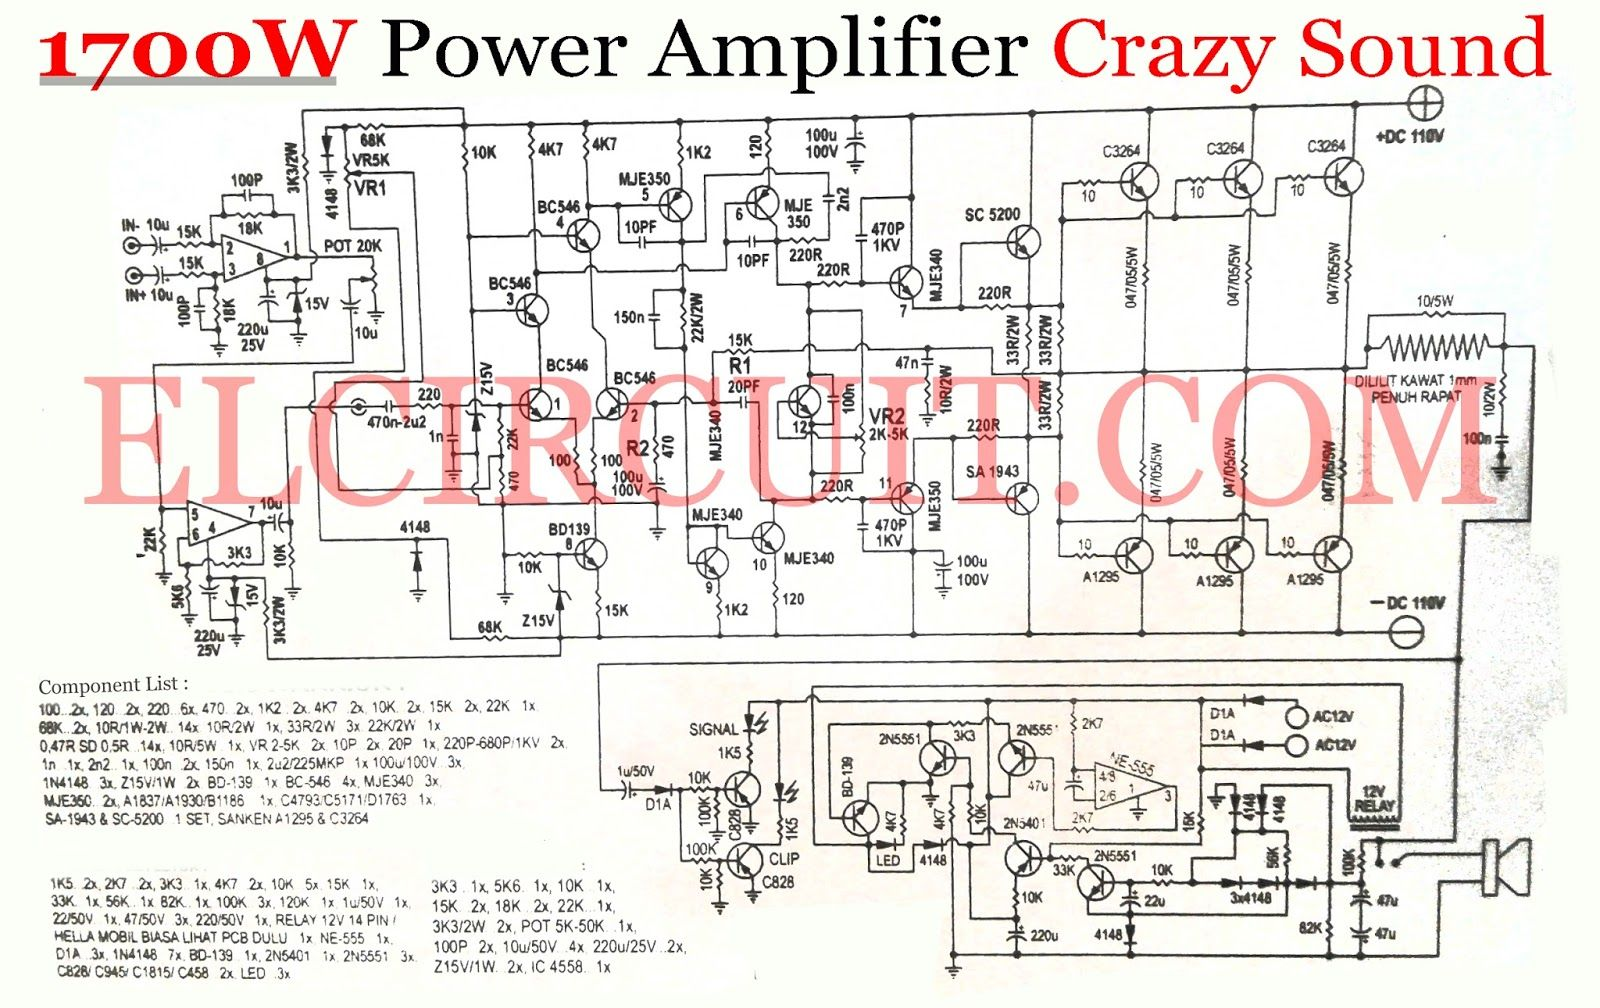 1700w power amplifier crazy sound output power supply circuit circuit diagram audio amplifier  [ 1600 x 1008 Pixel ]